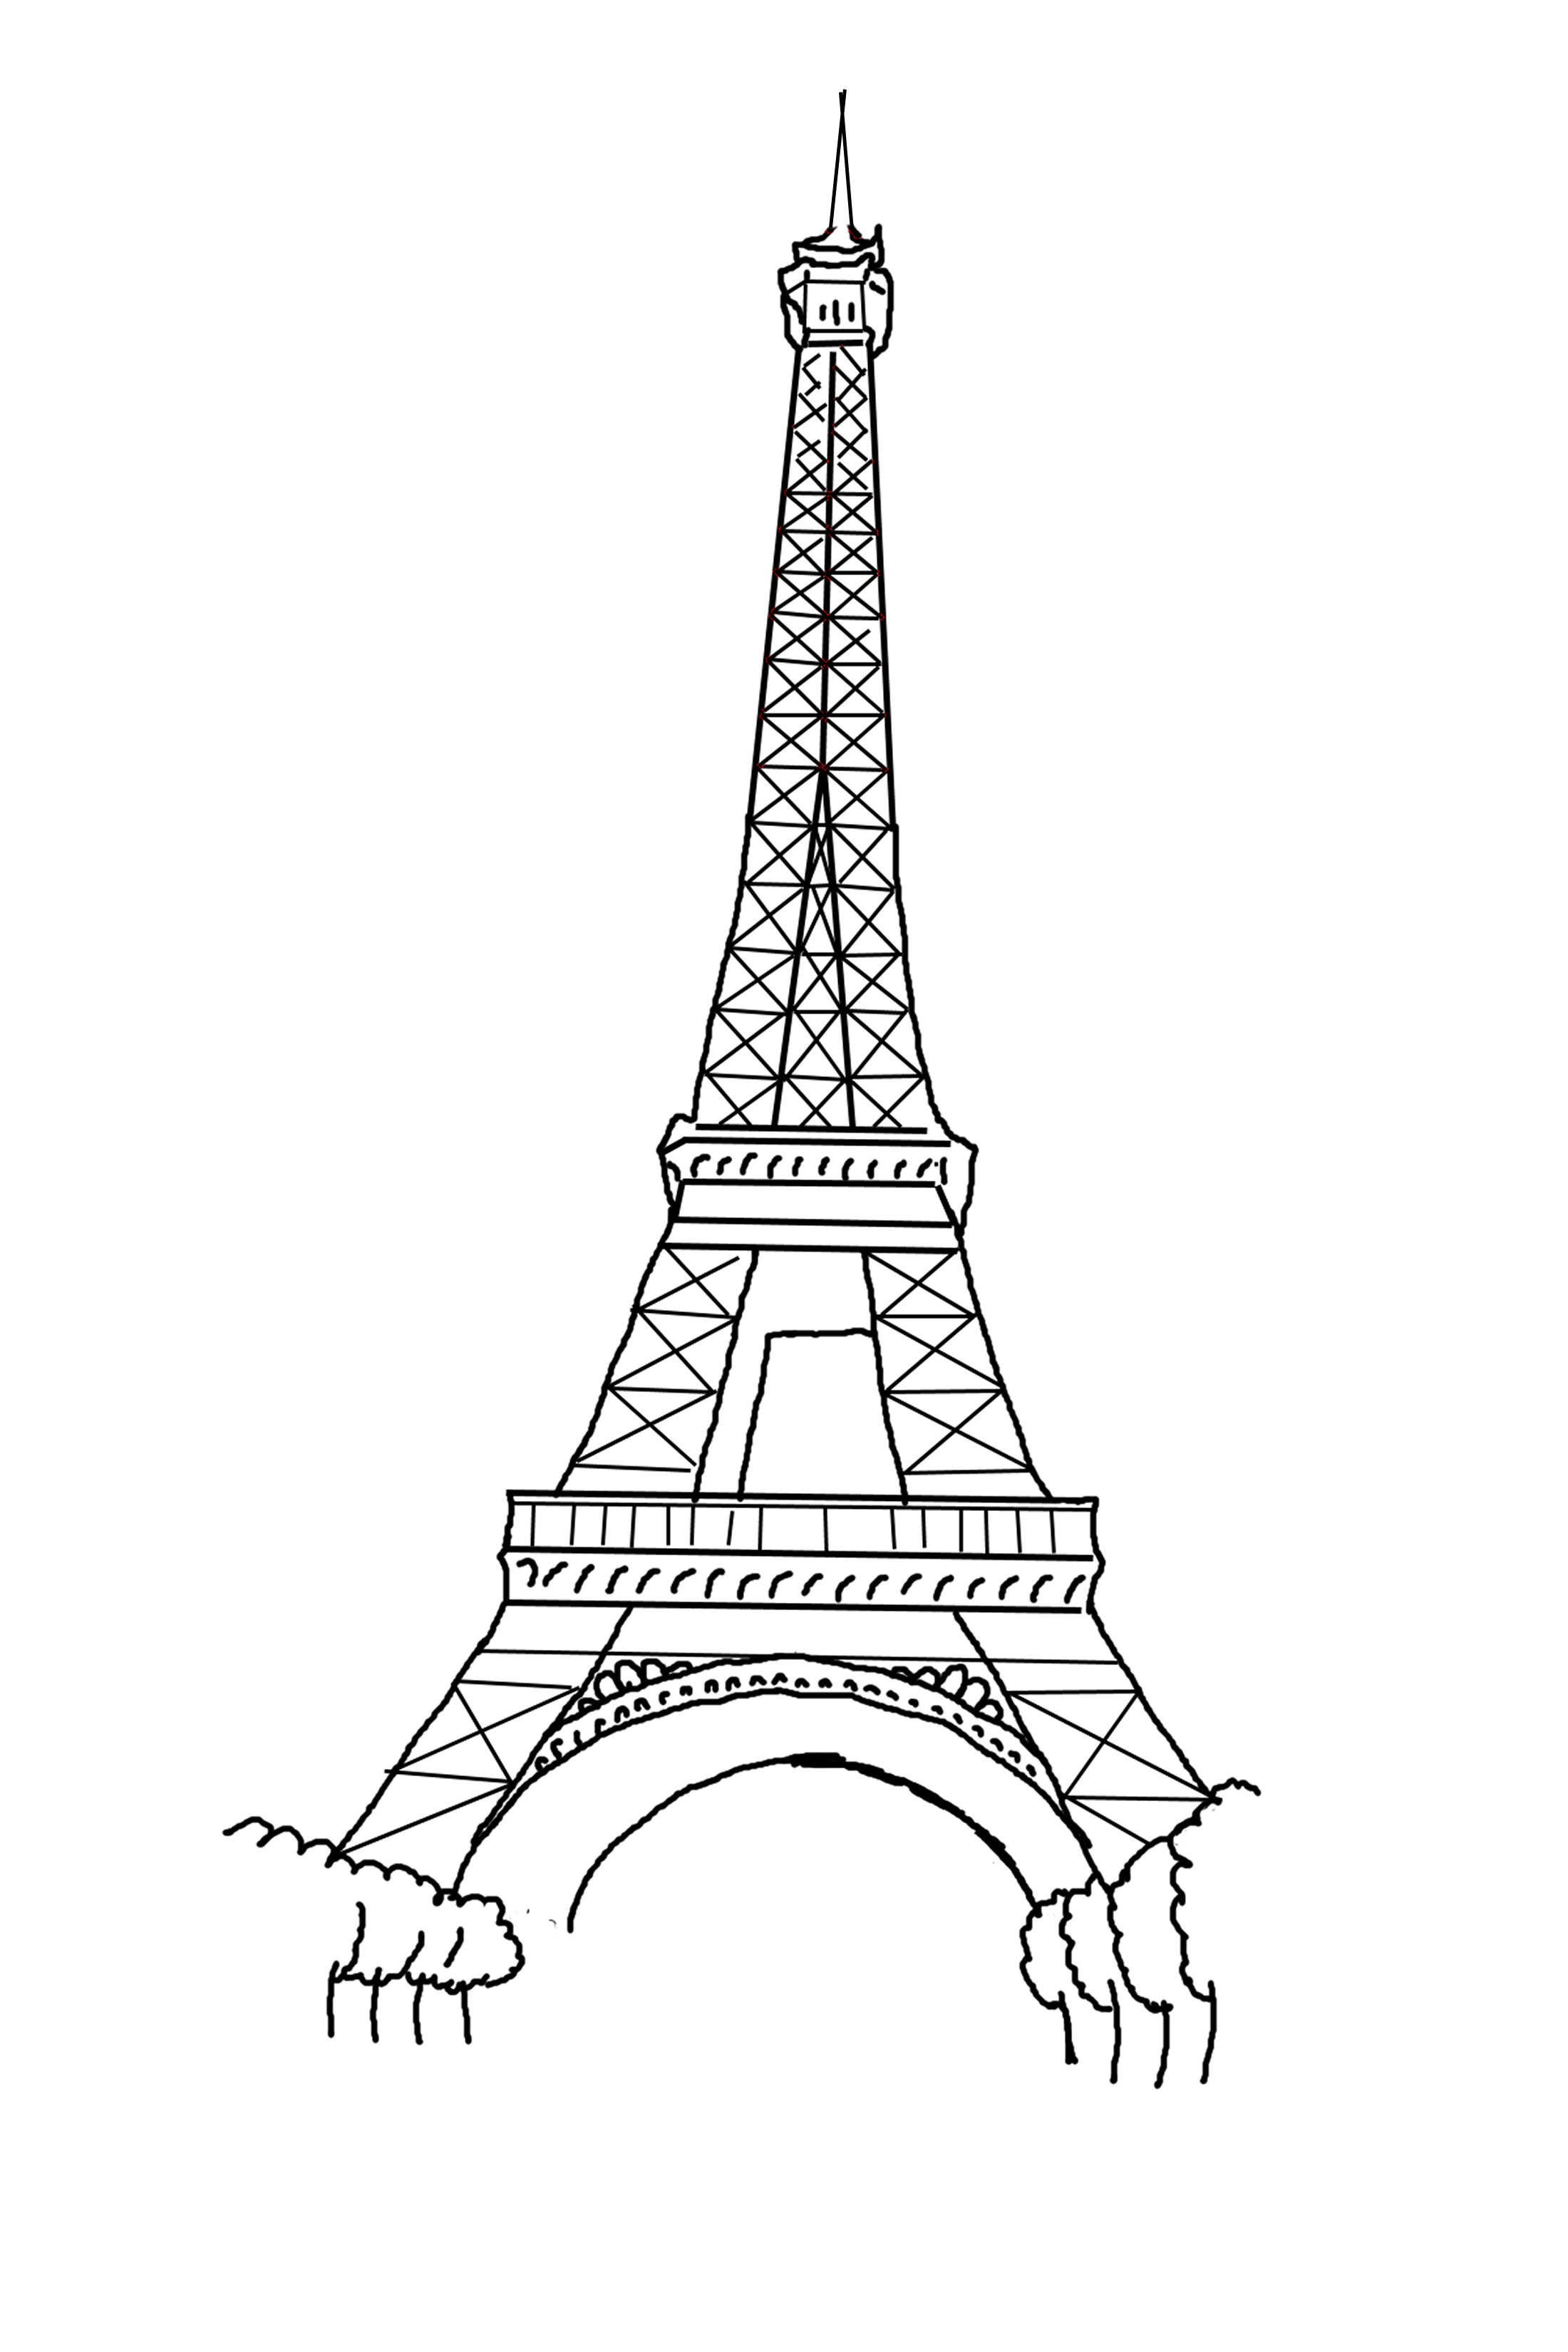 Tower coloring #6, Download drawings